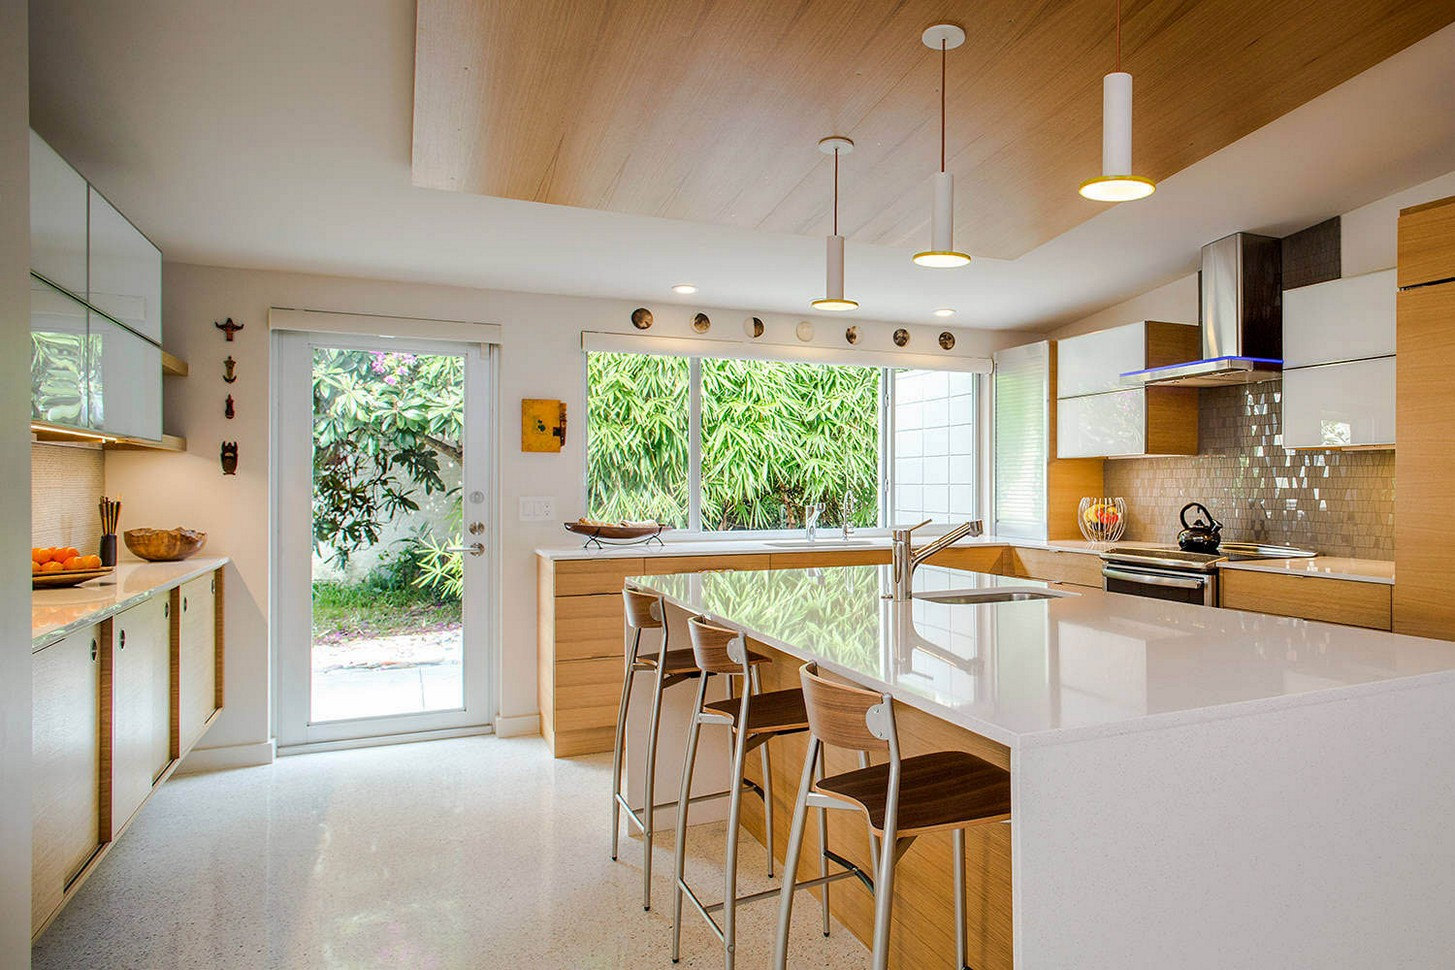 Elegant Design Of The Mid Century Modern Kitchen With White Marble Kitchen Island Added With White Floor Ideas